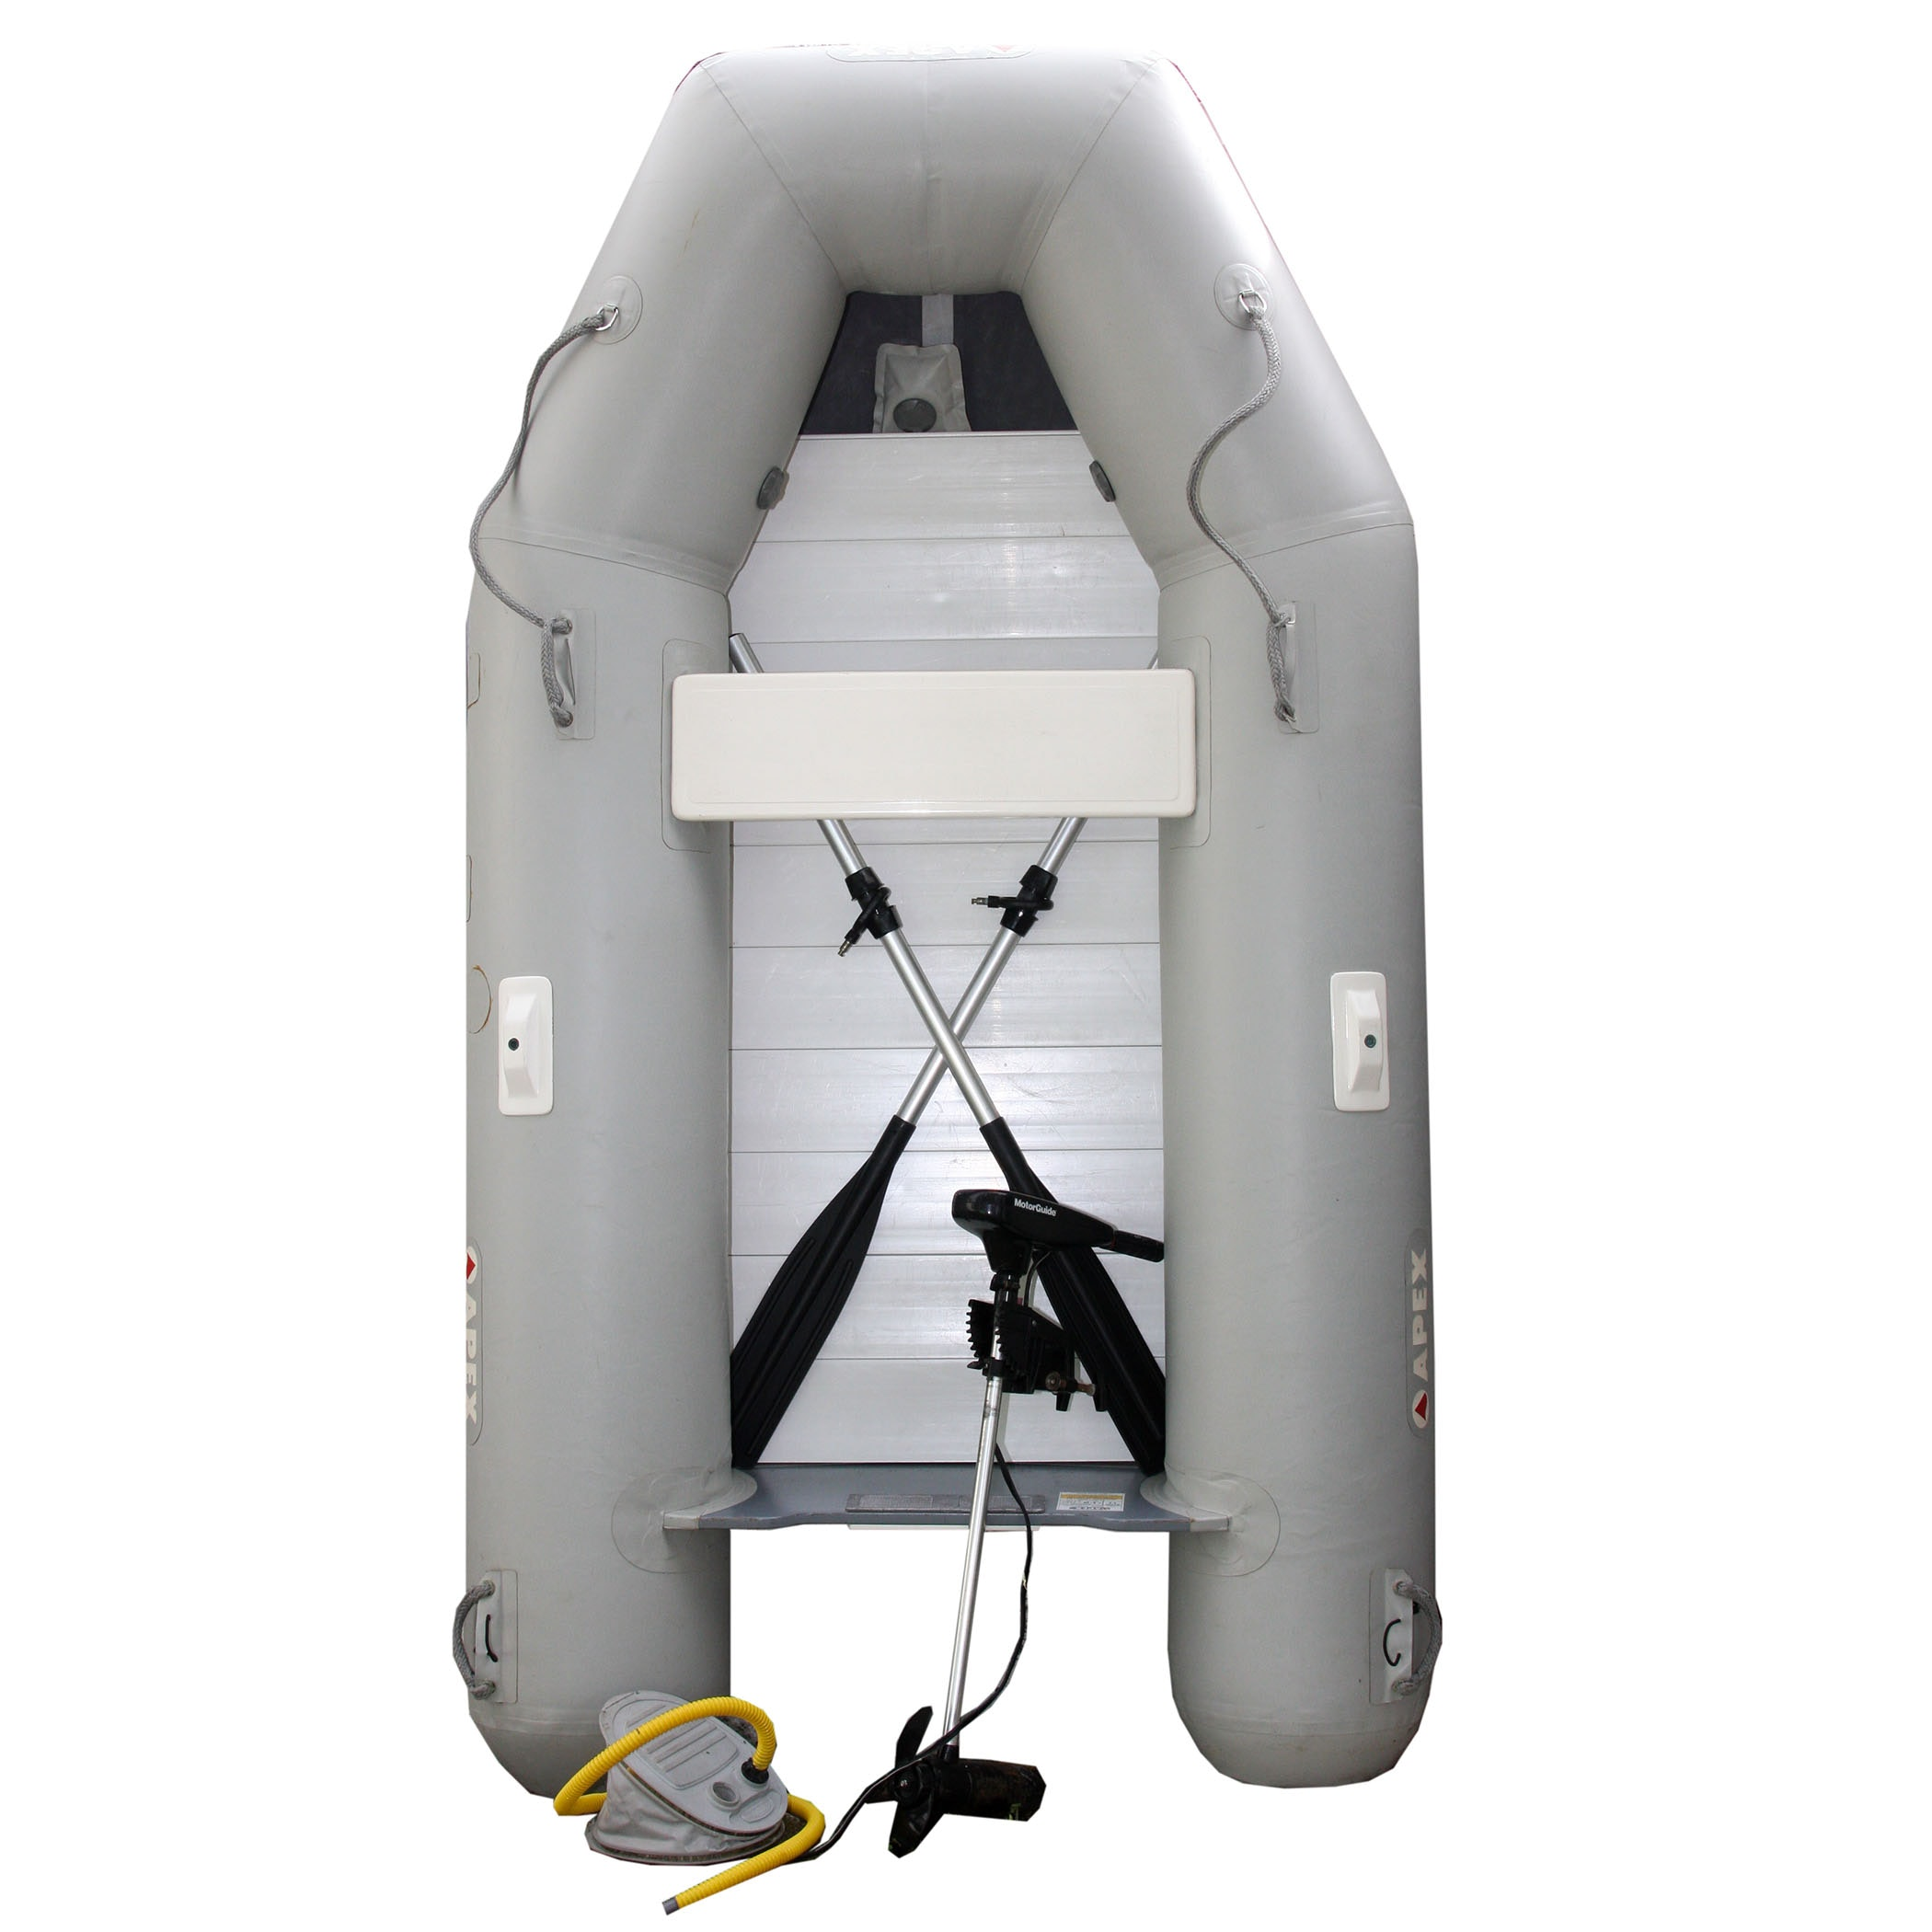 APEX Inflatable Dingy With Trolling Motor